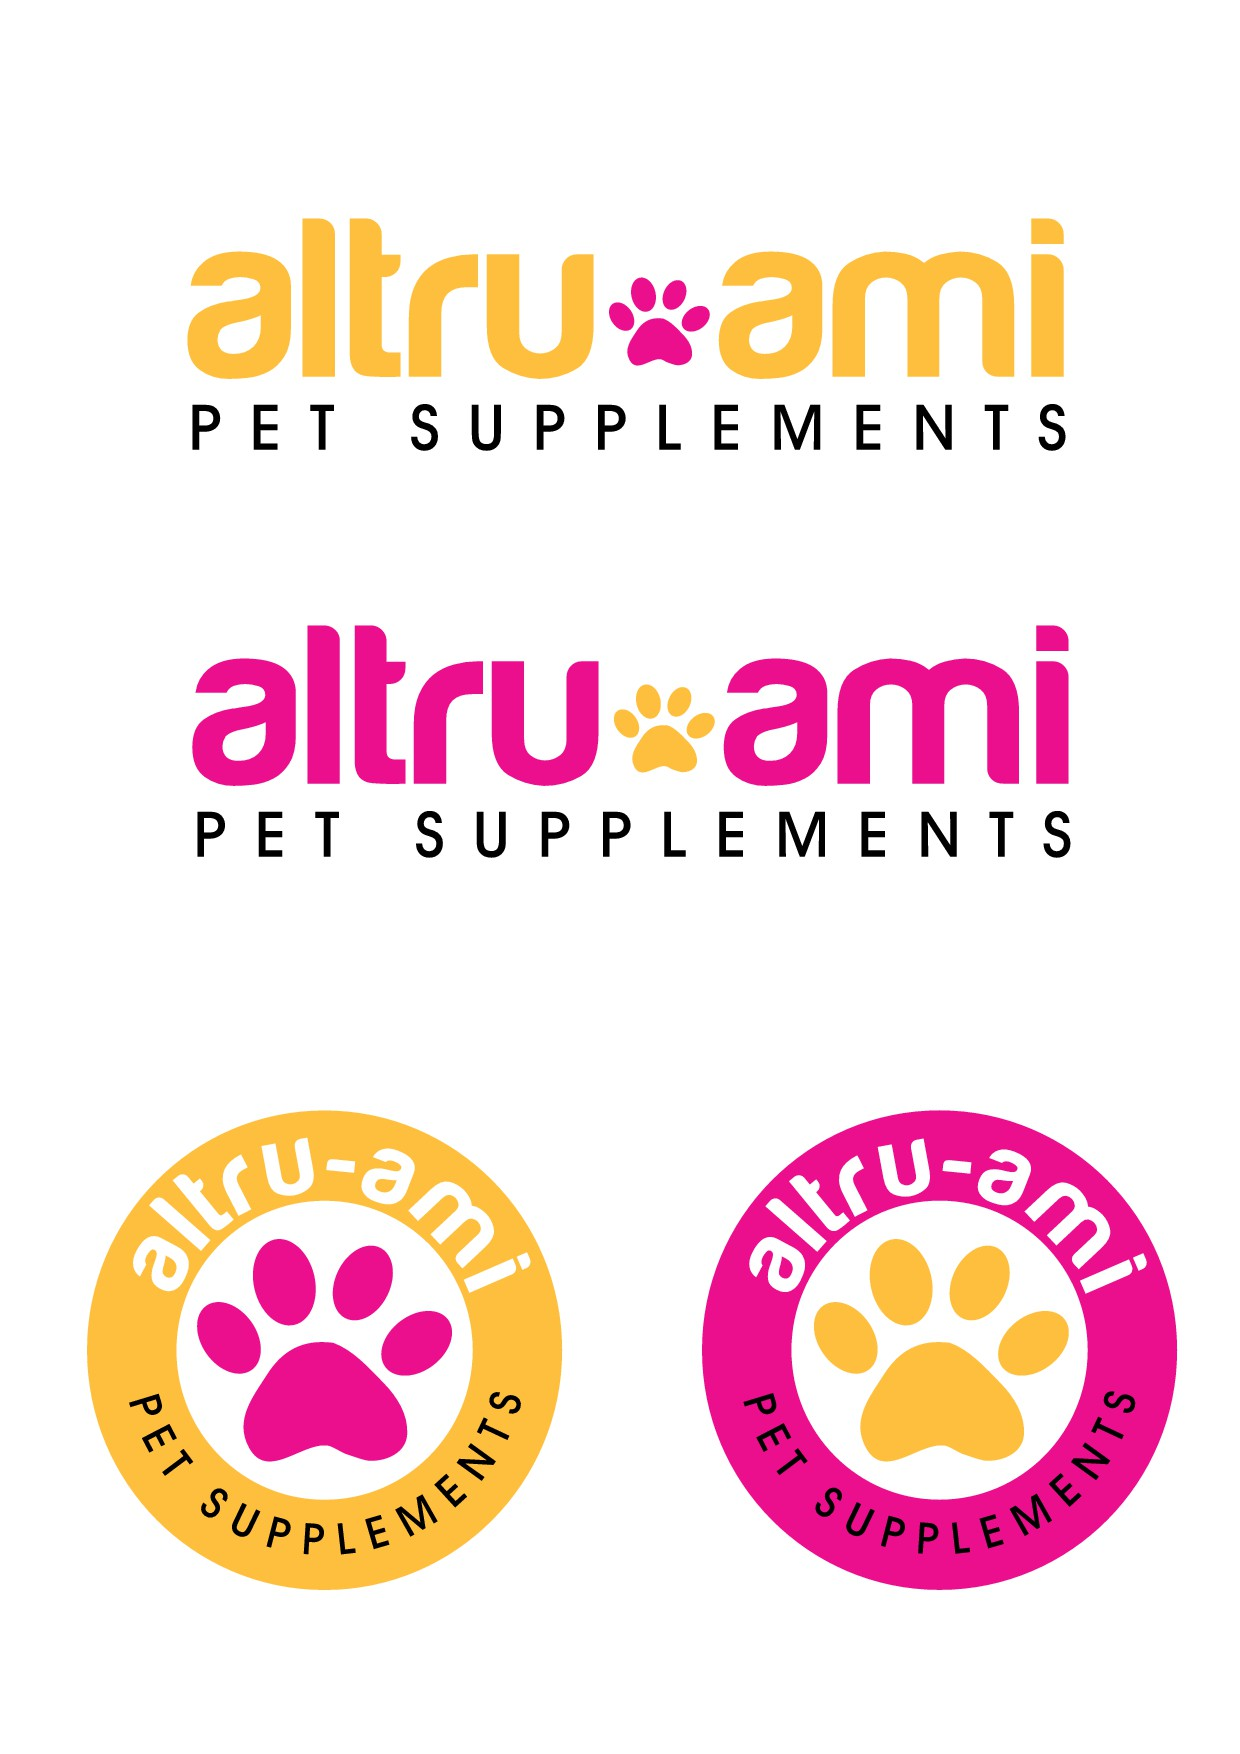 Pop me to the top sales on amazon with my pet supplies brand Altru-Ami